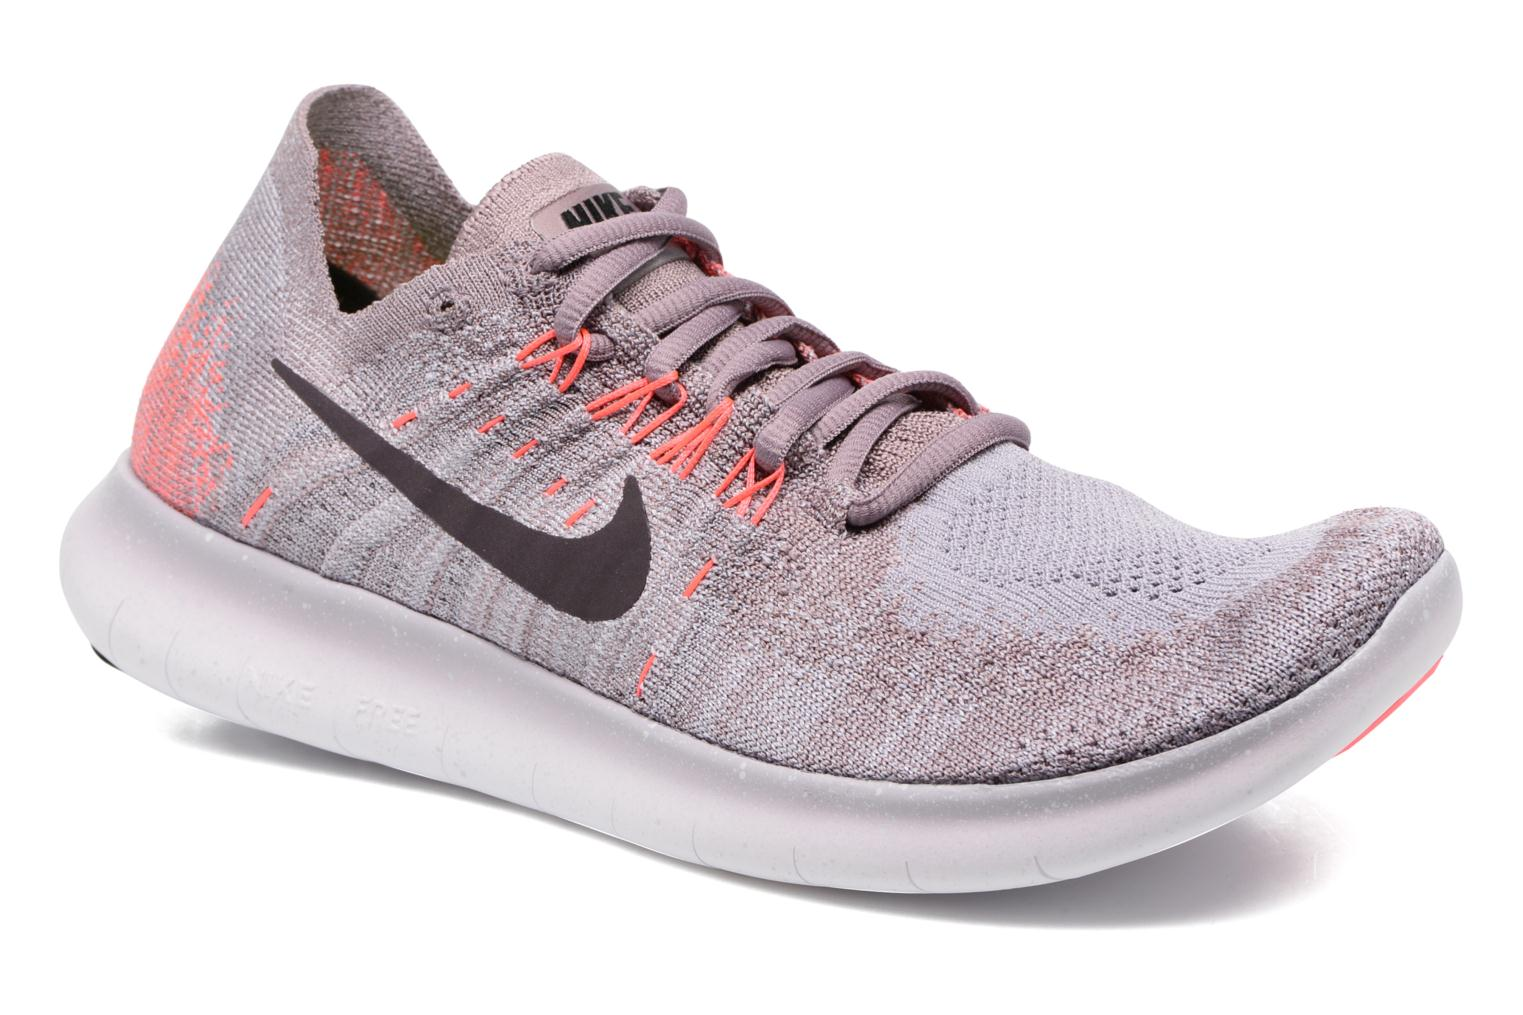 Wmns Nike free Rn Flyknit 2017 Taupe Grey/Port Wine-Solar Red